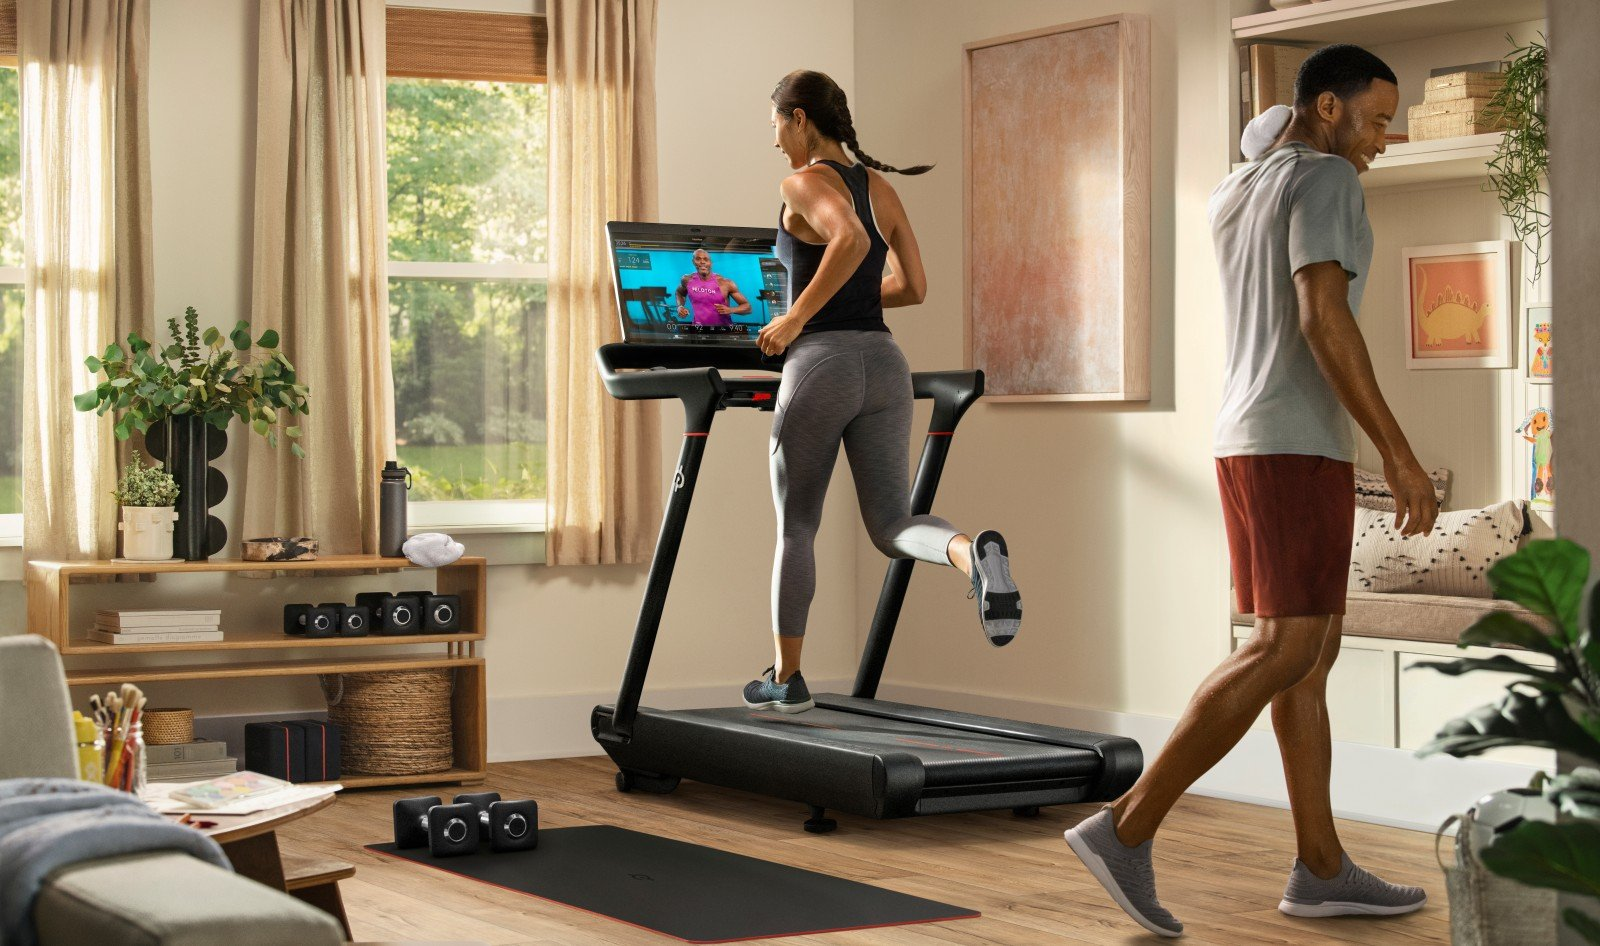 Peloton's $ 3,000 treadmill now comes with a surprise 'subscription fee'